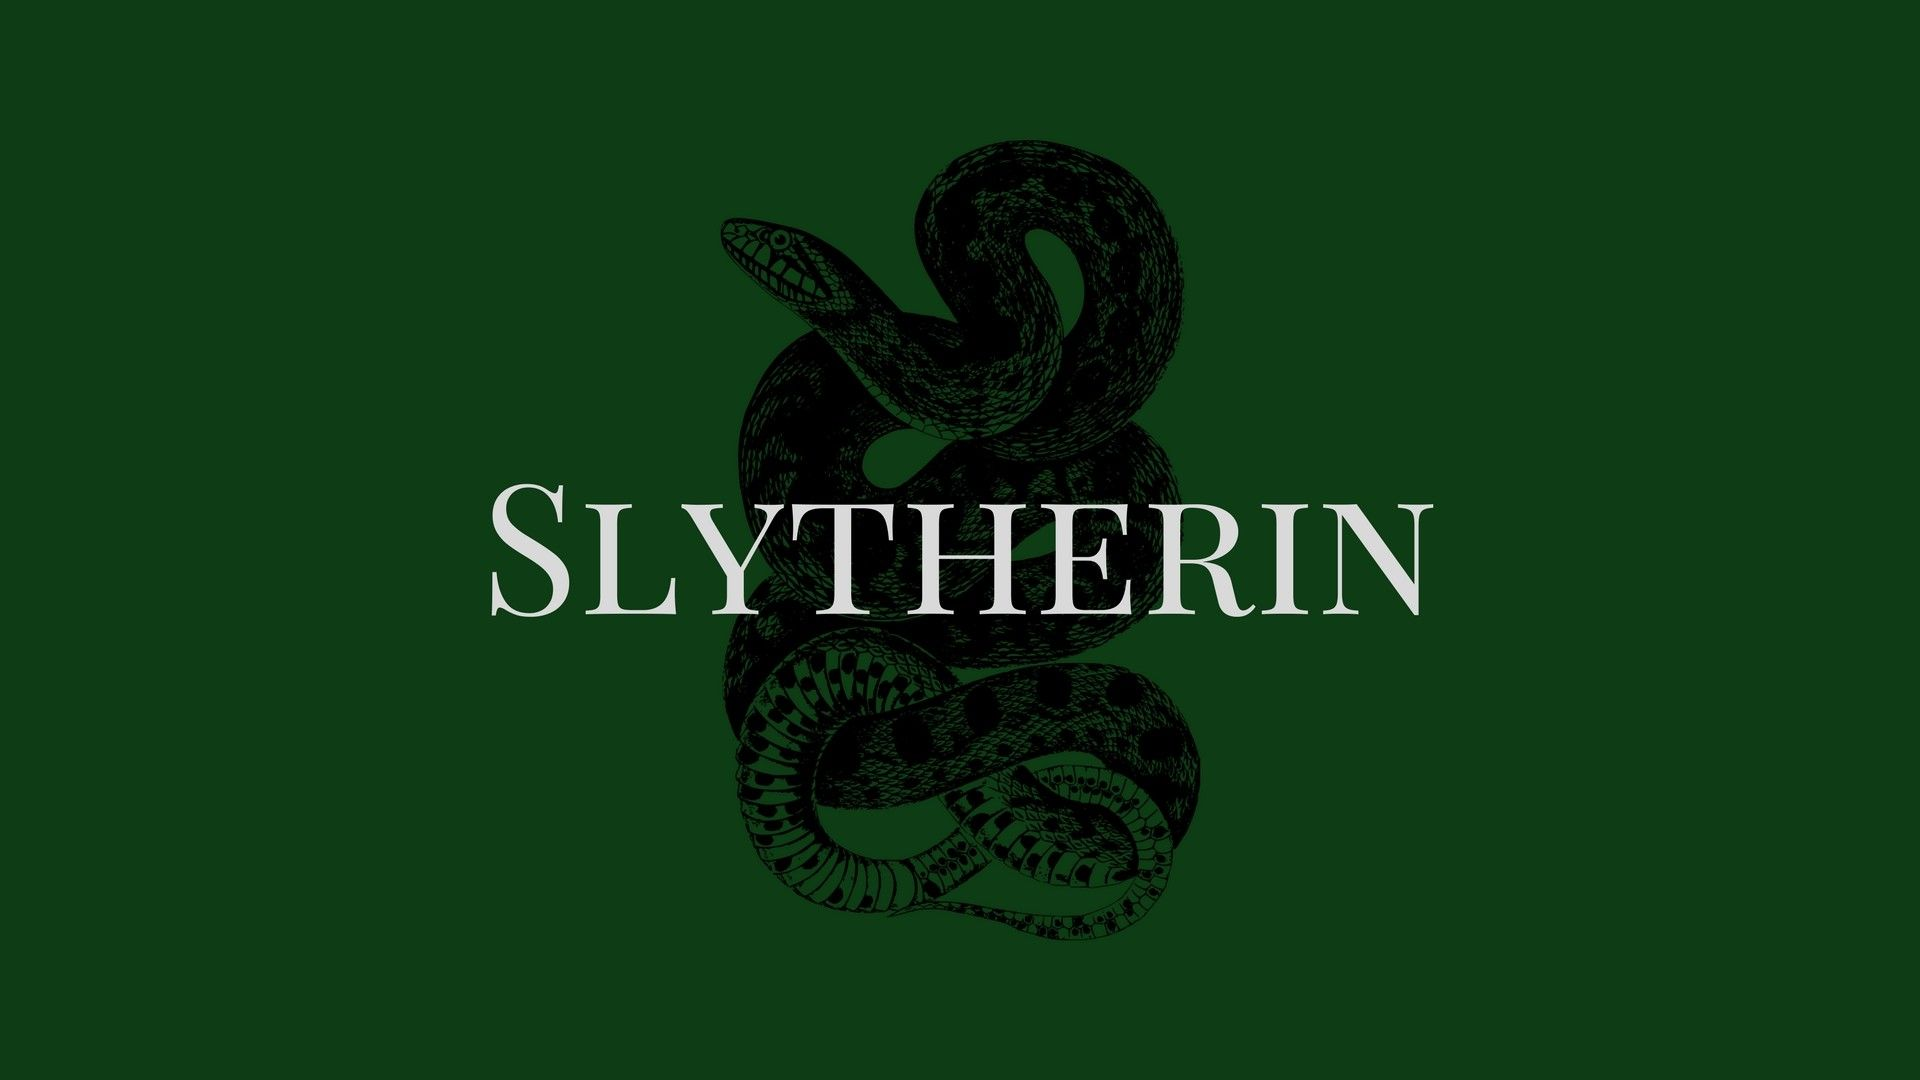 1920x1080 80+ Hd Slytherin Wallpapers on WallpaperPlay